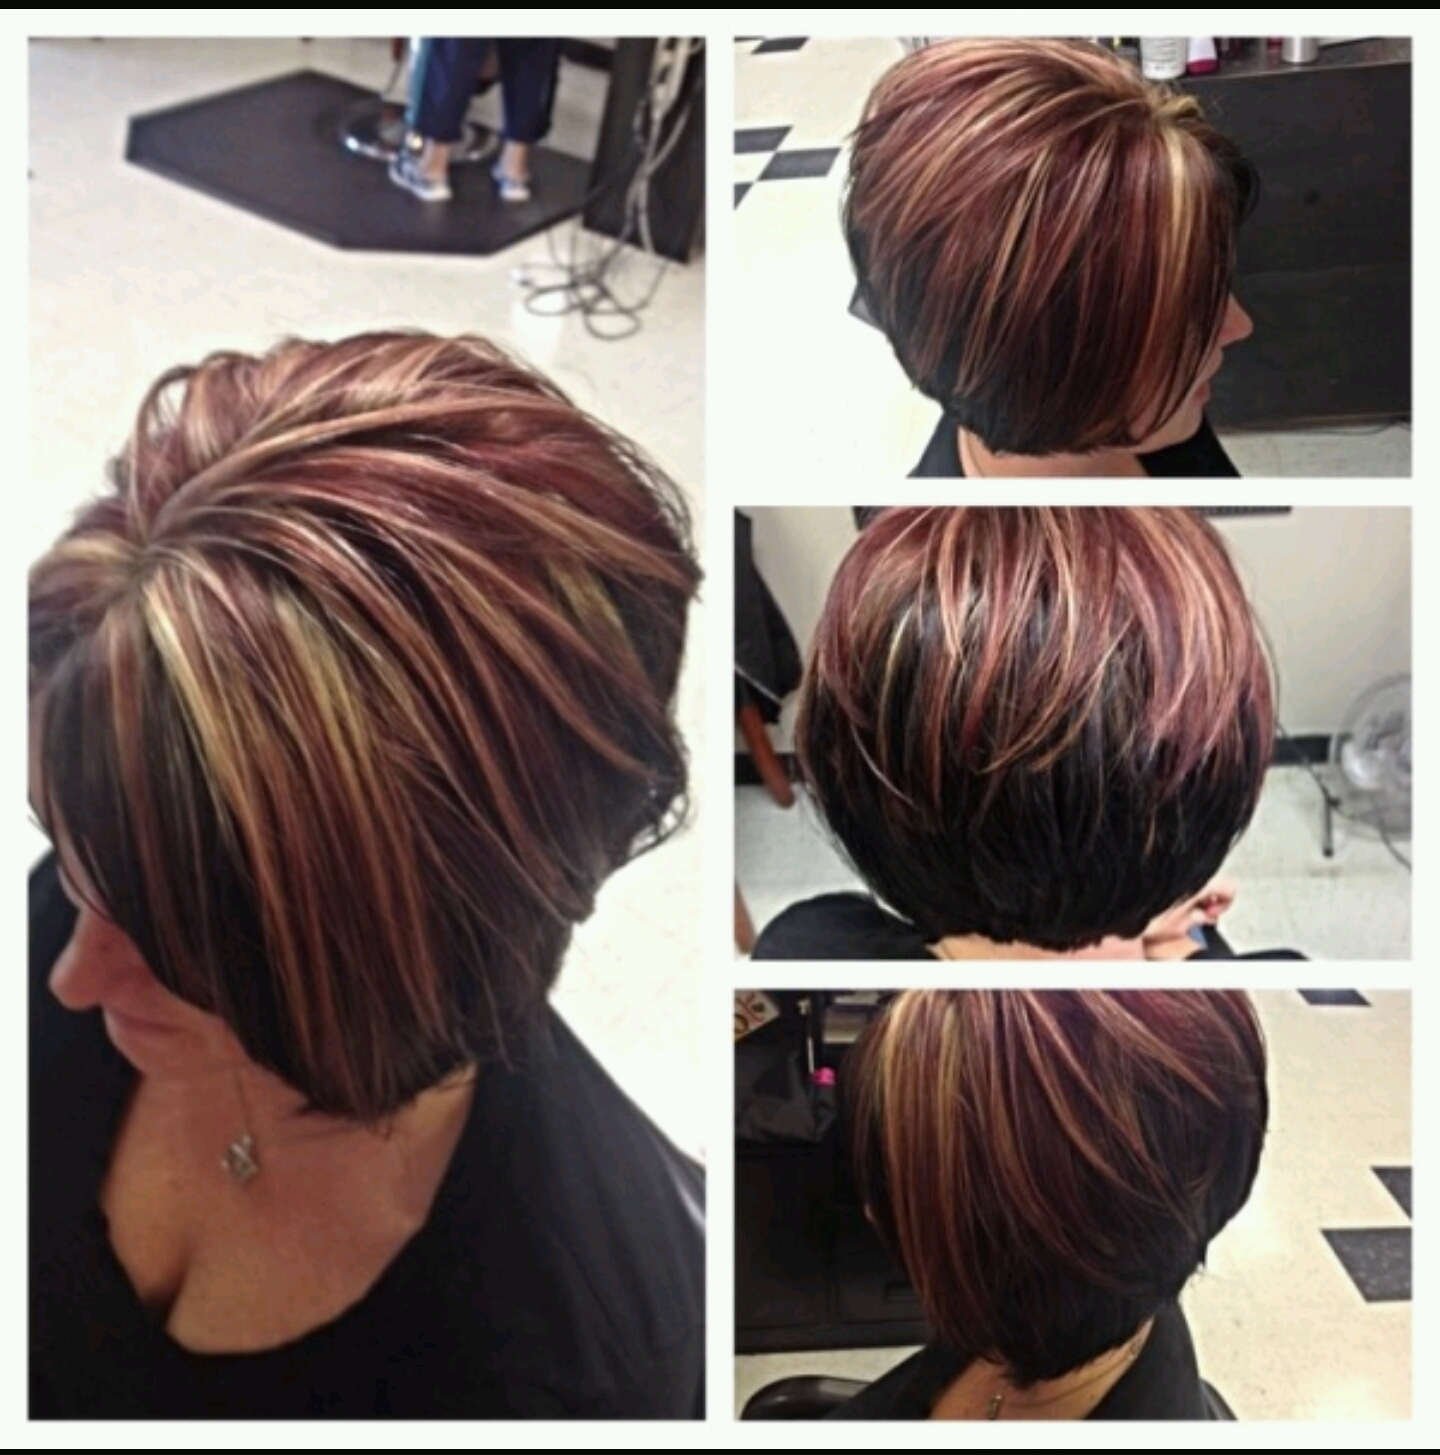 Blonde to Red transition: Bob cut Style: digzmania